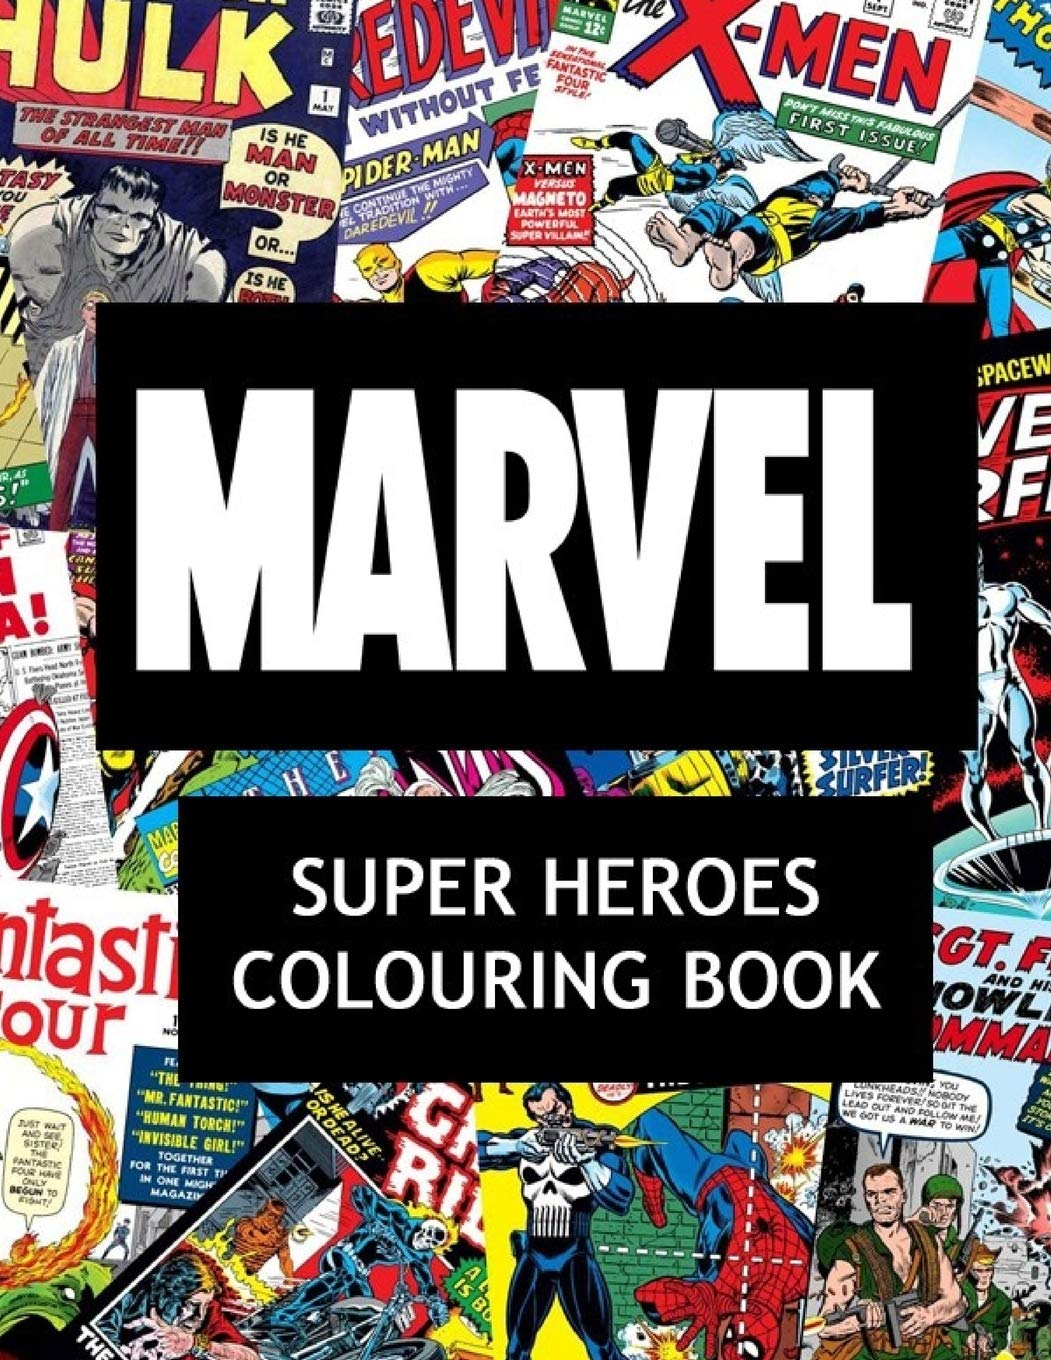 - Marvel Super Heroes Colouring Book: Amazon.in: Jackson, James: Books